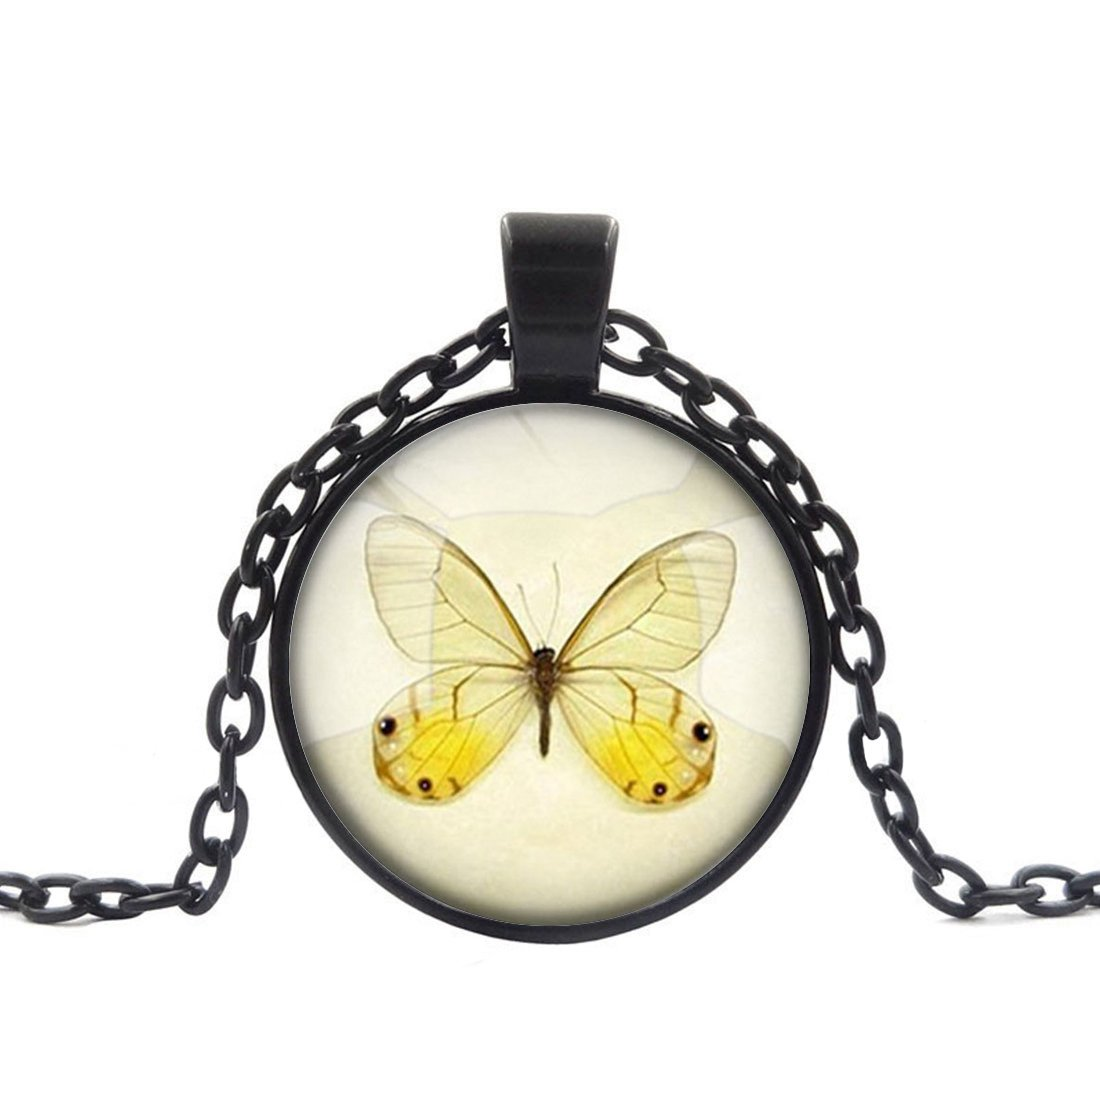 Adjustable Black Chain Necklace Yellow Butterfly Alloy Pendant Glass Necklace Choker Plating Chain Glass Cabochon